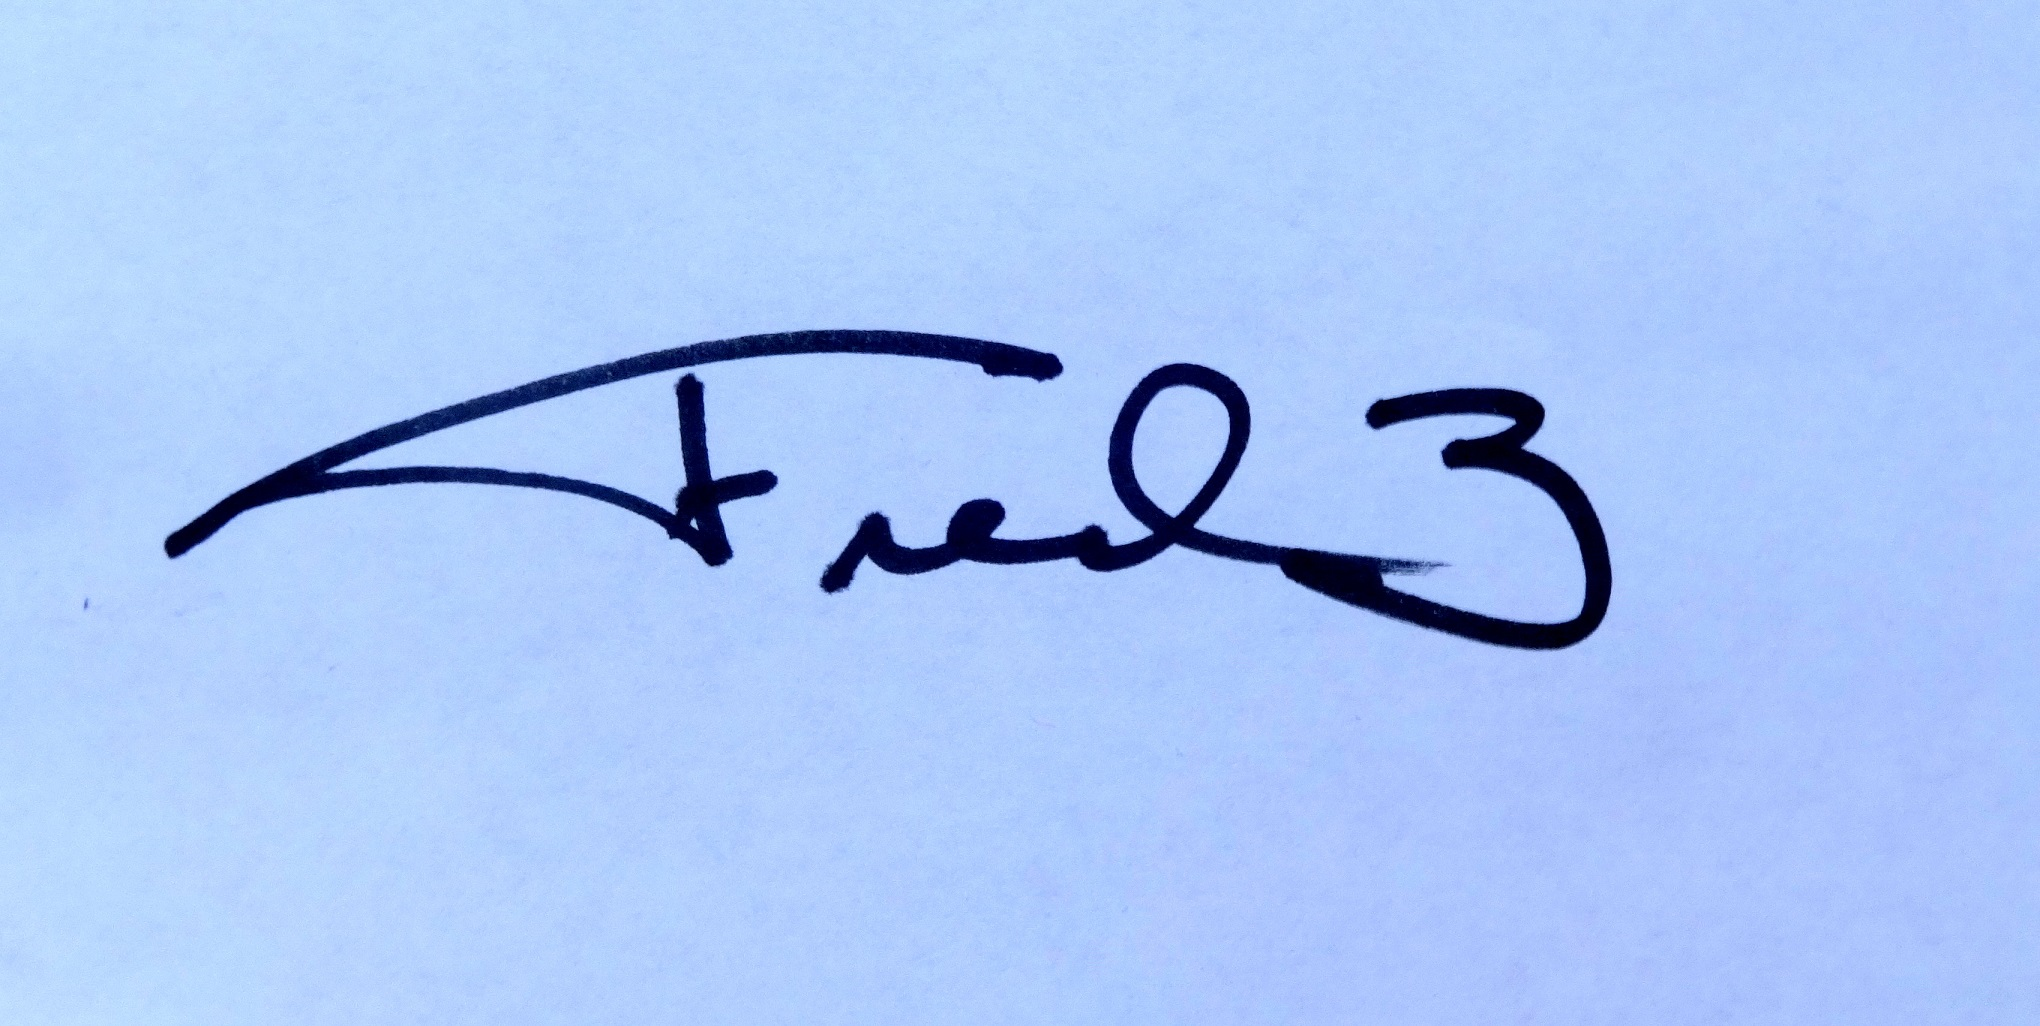 fred wilson's Signature